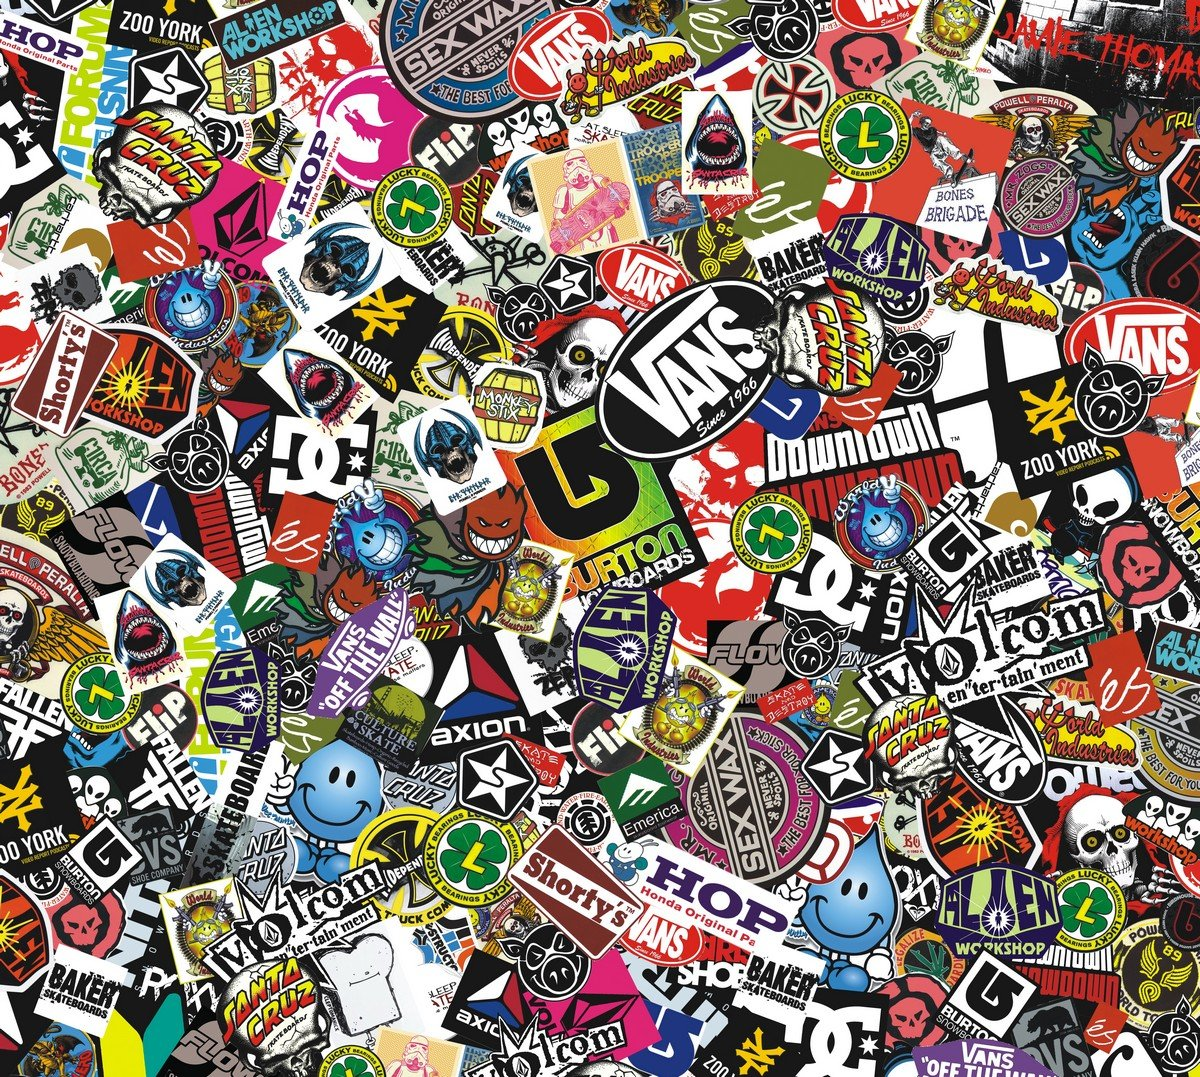 sticker bomb wallpaper cartoon - photo #36